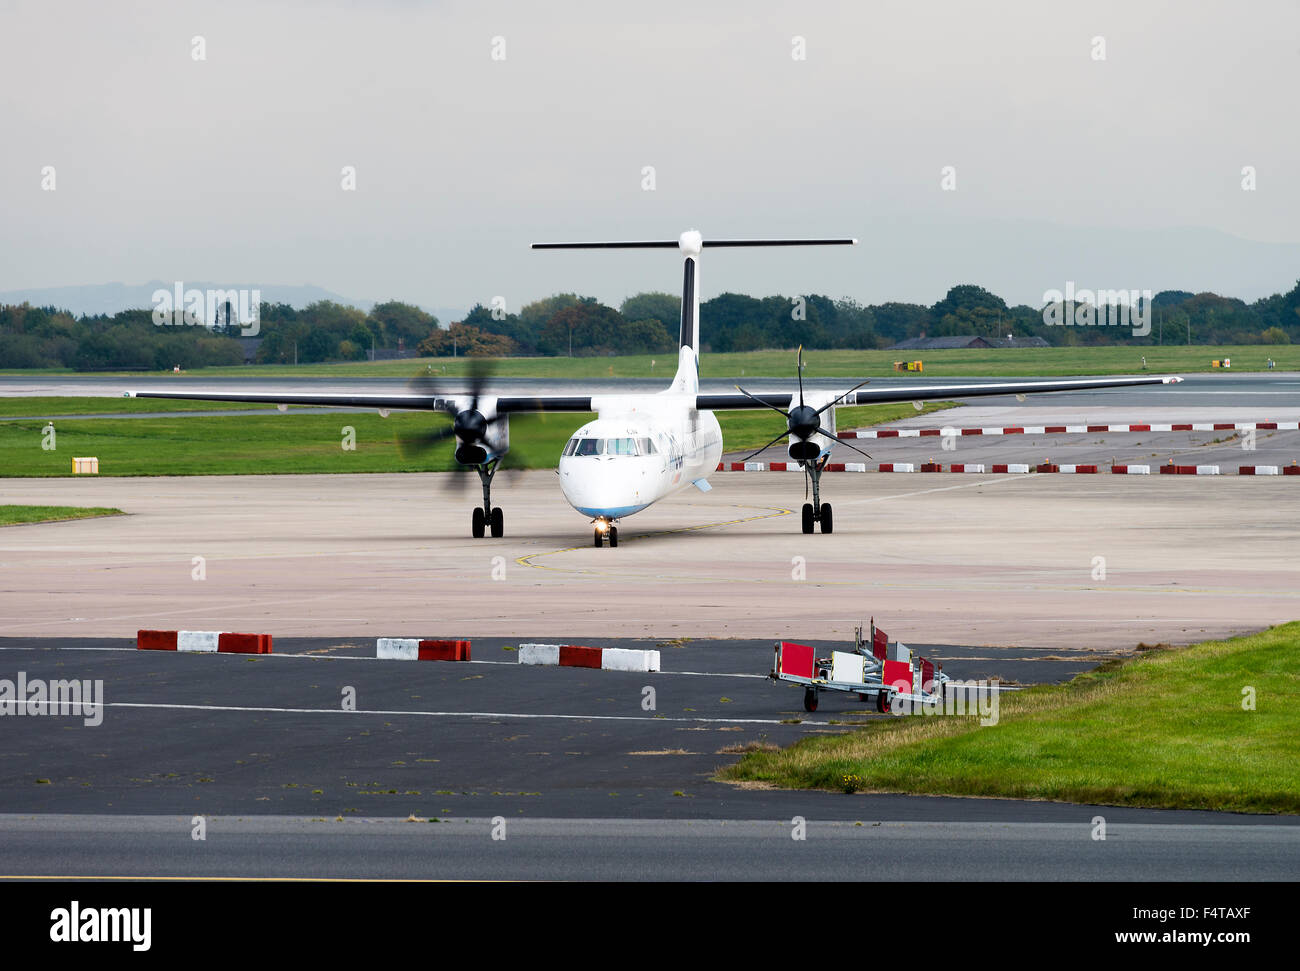 Flybe Airlines Bombardier Dash8-402Q Turboprop Airliner G-JECN Taxiing at Manchester Airport England United Kingdom Stock Photo